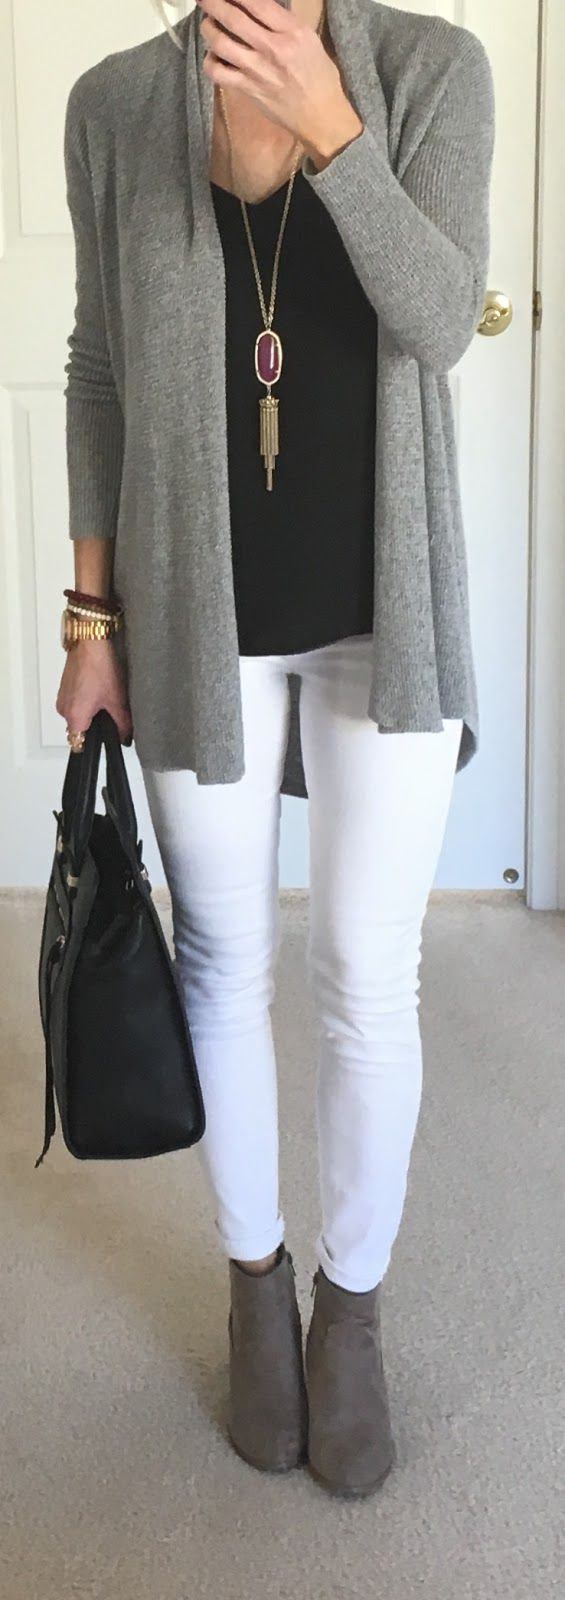 Best 25+ Faux leather leggings ideas only on Pinterest | Leather ...